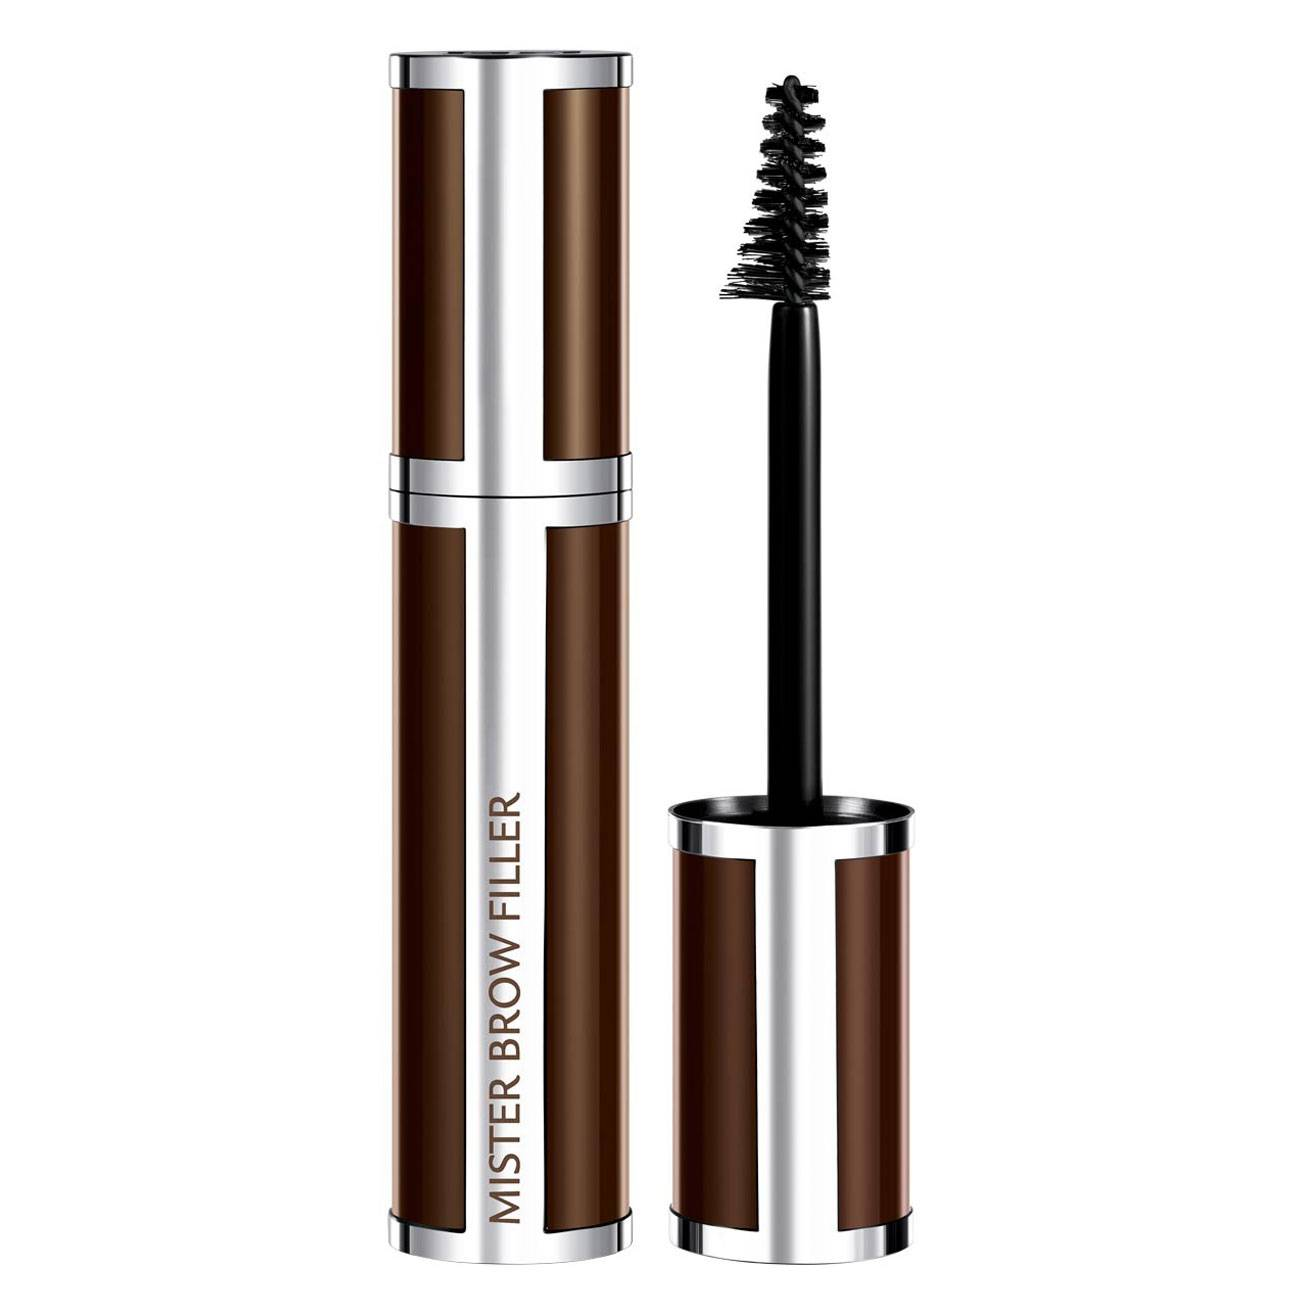 MISTER BROW FILLER MASCARA 6 ML imagine produs